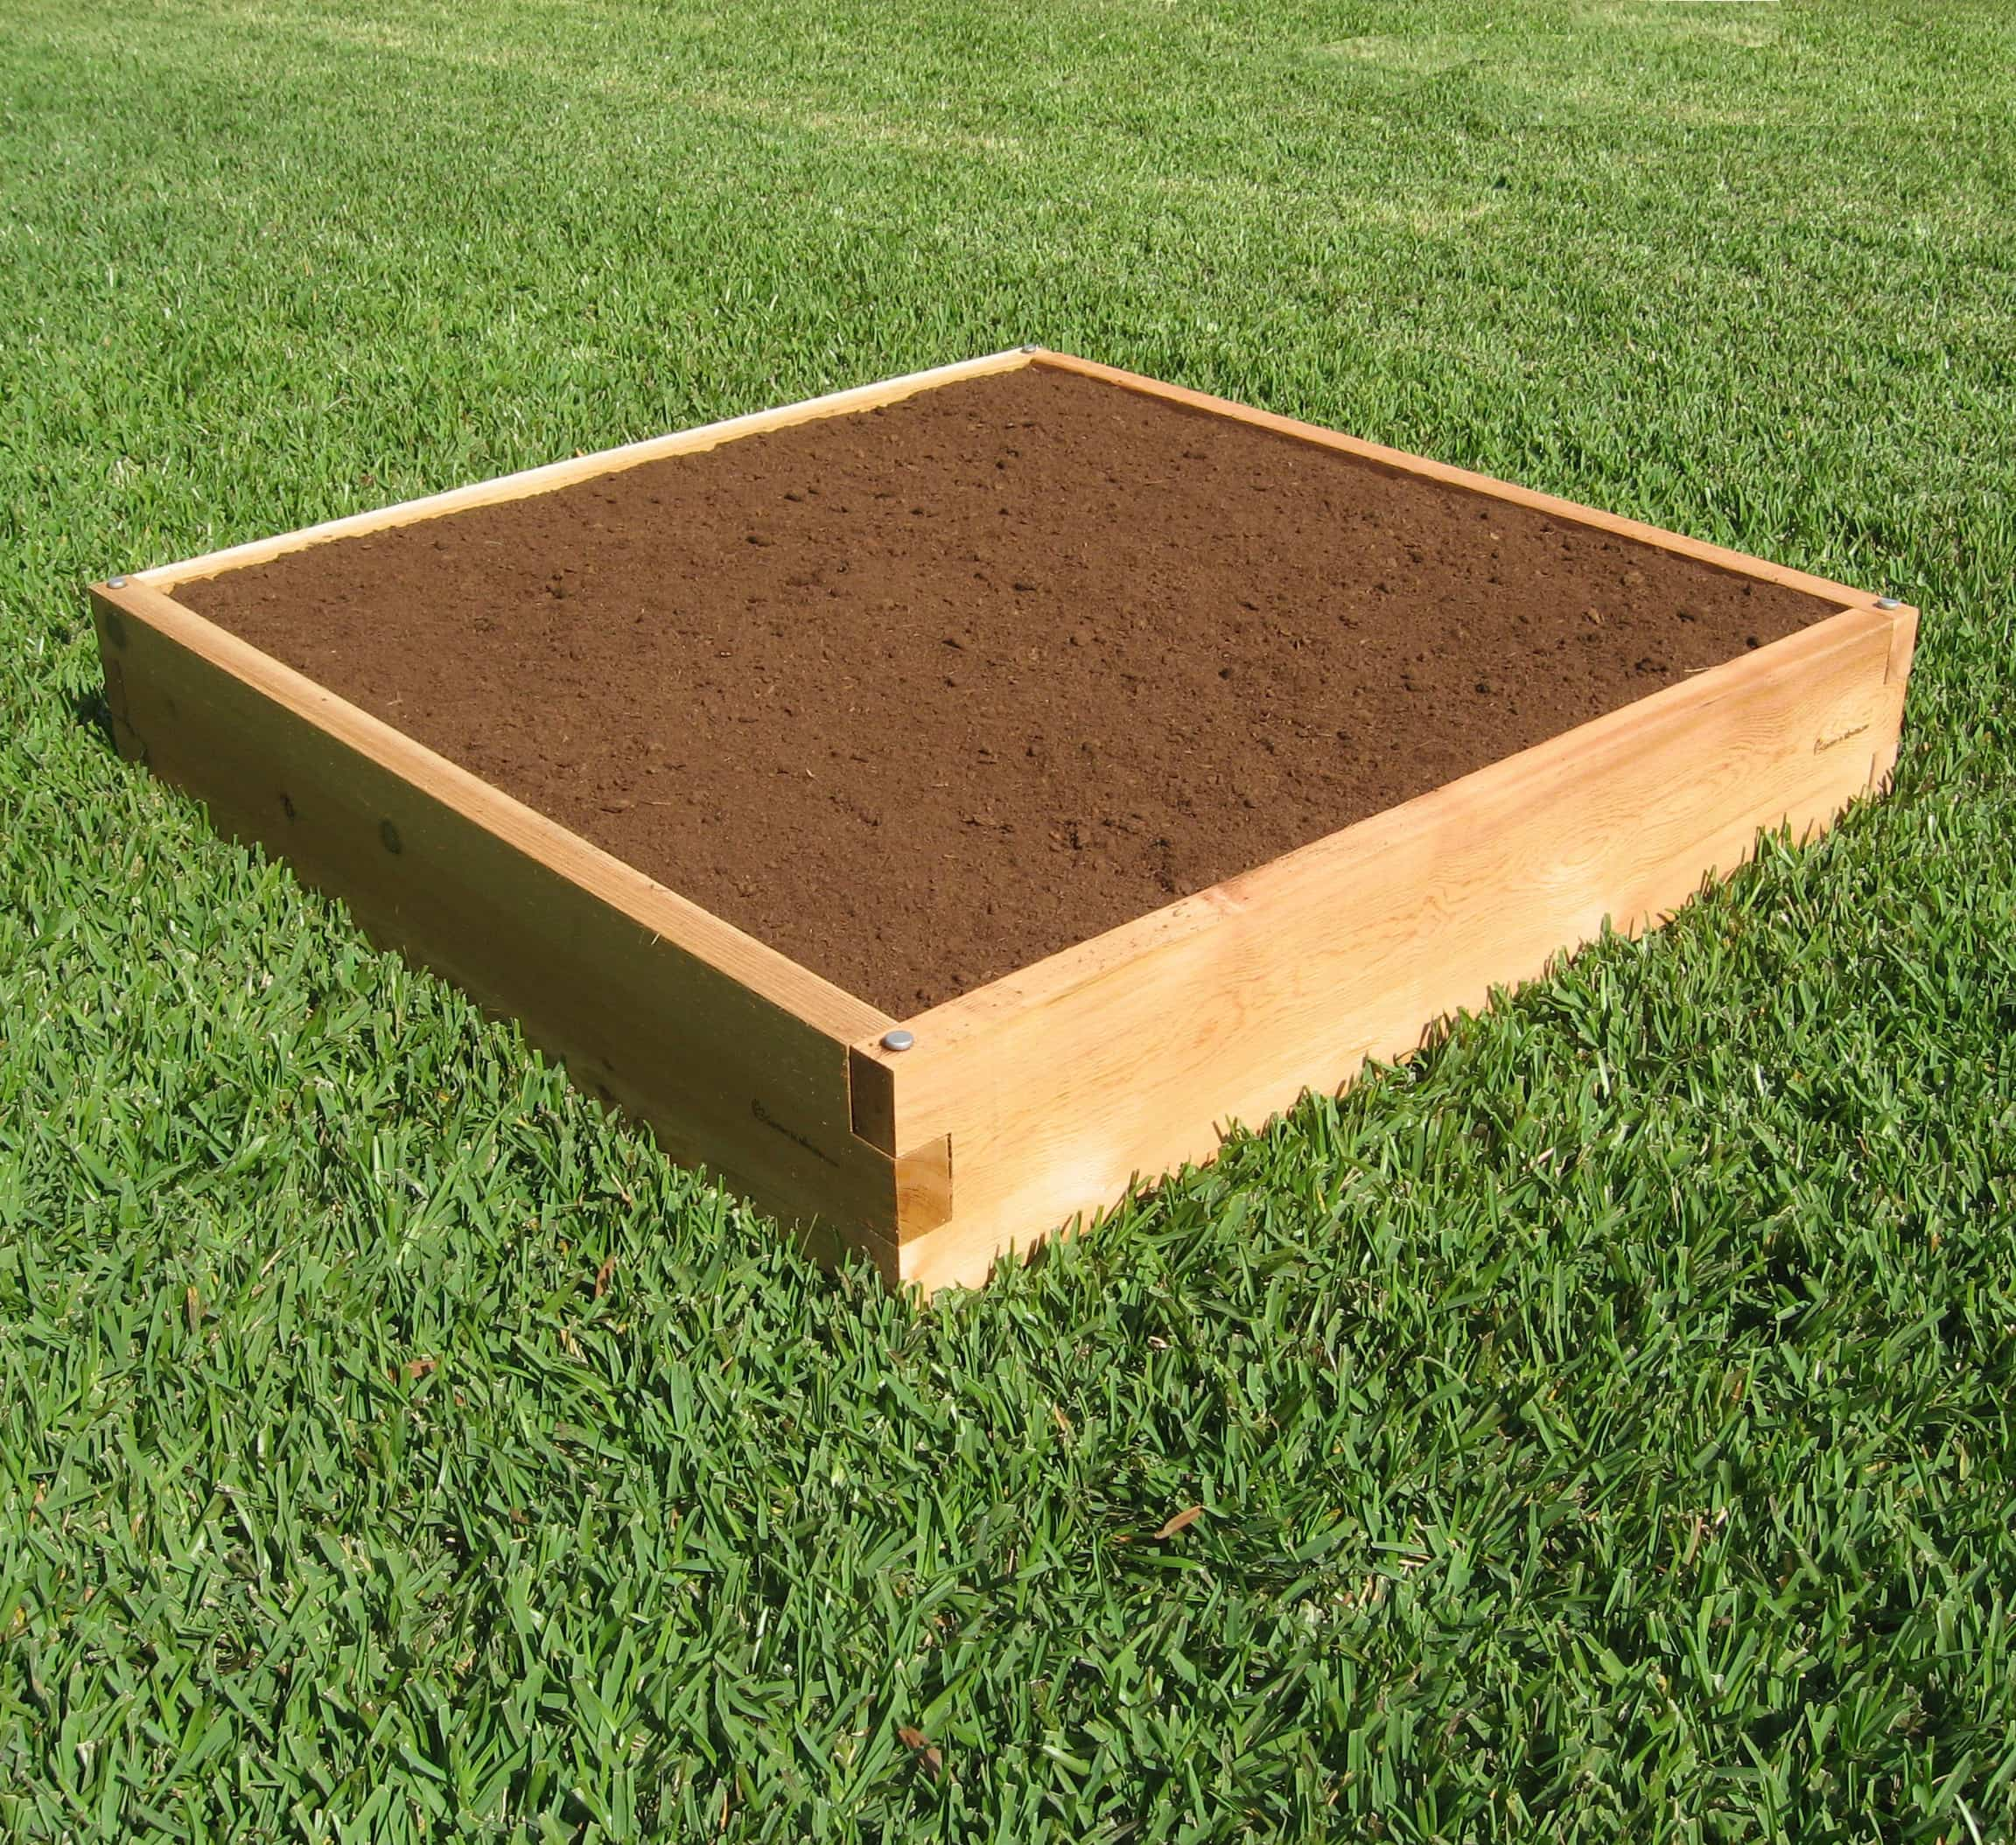 4x4 raised garden bed 4x4 cedar bed garden in minutes Raised garden beds